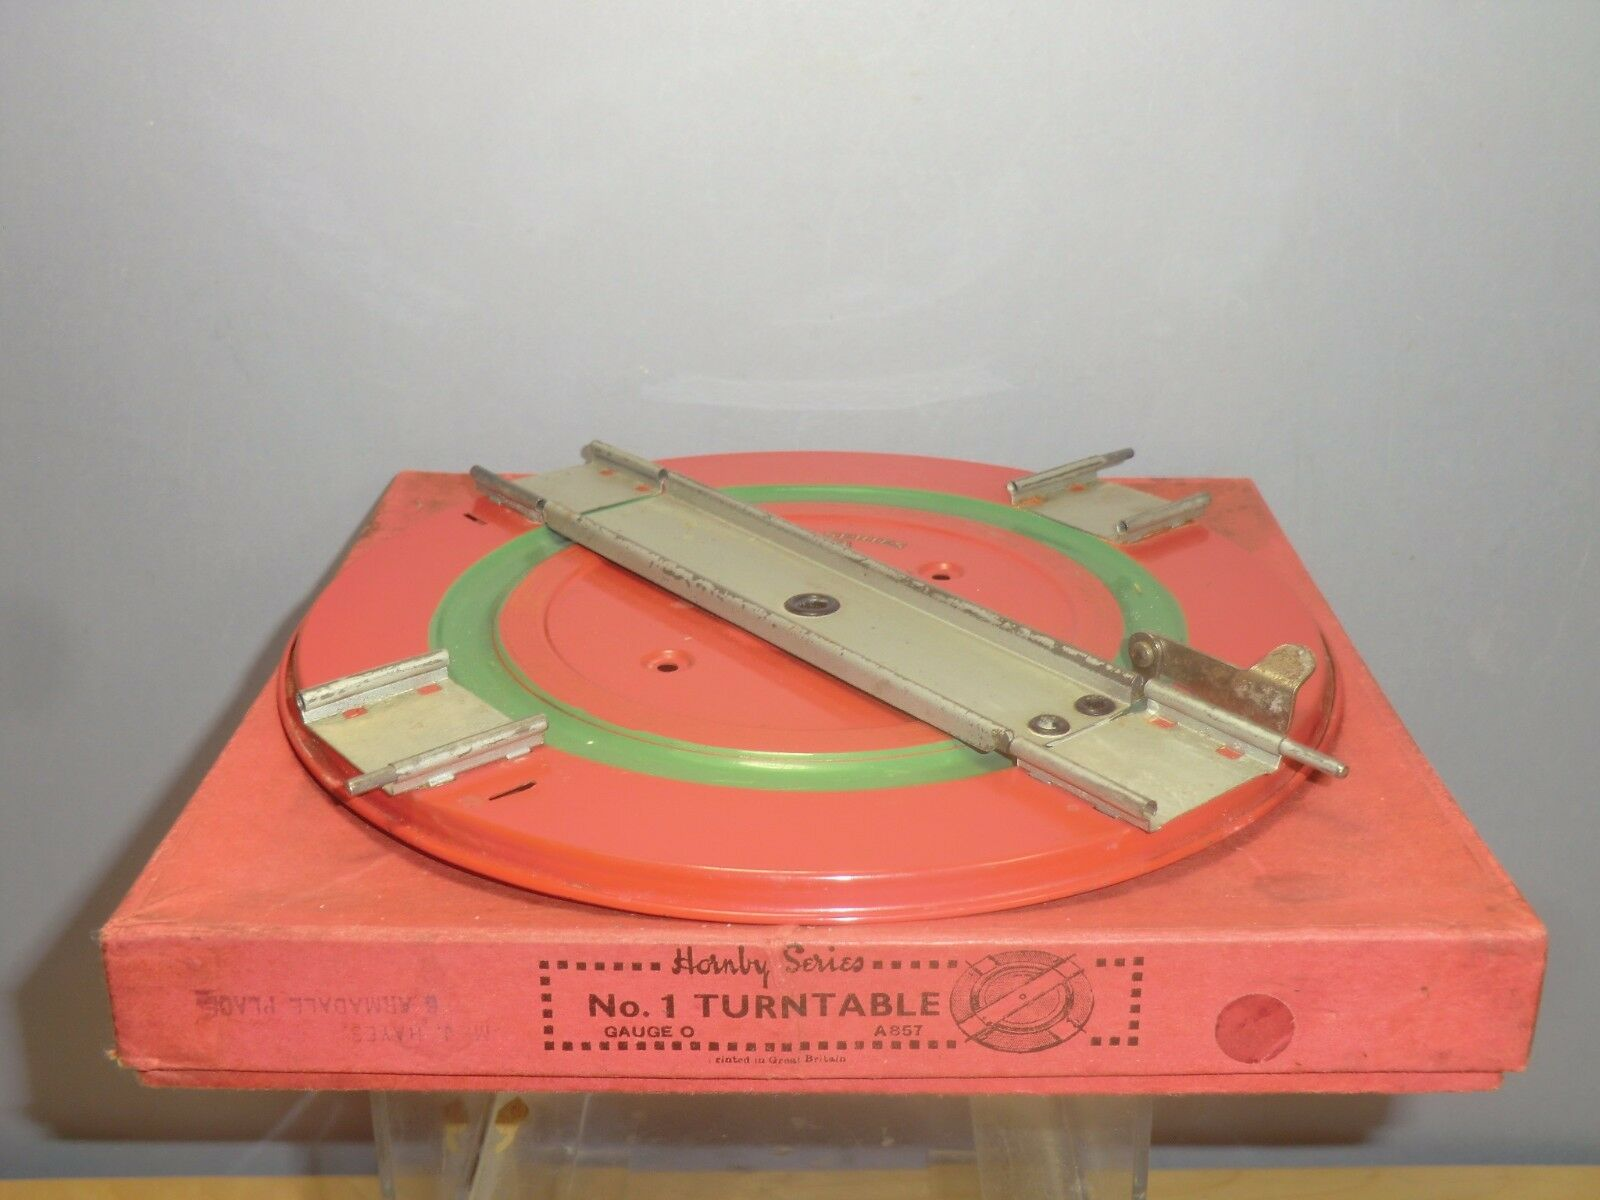 VINTAGE HORNBY  MODEL  0  No.1   SMALL  TURNTABLE   rosso / verde 2nd VERSION  MIB